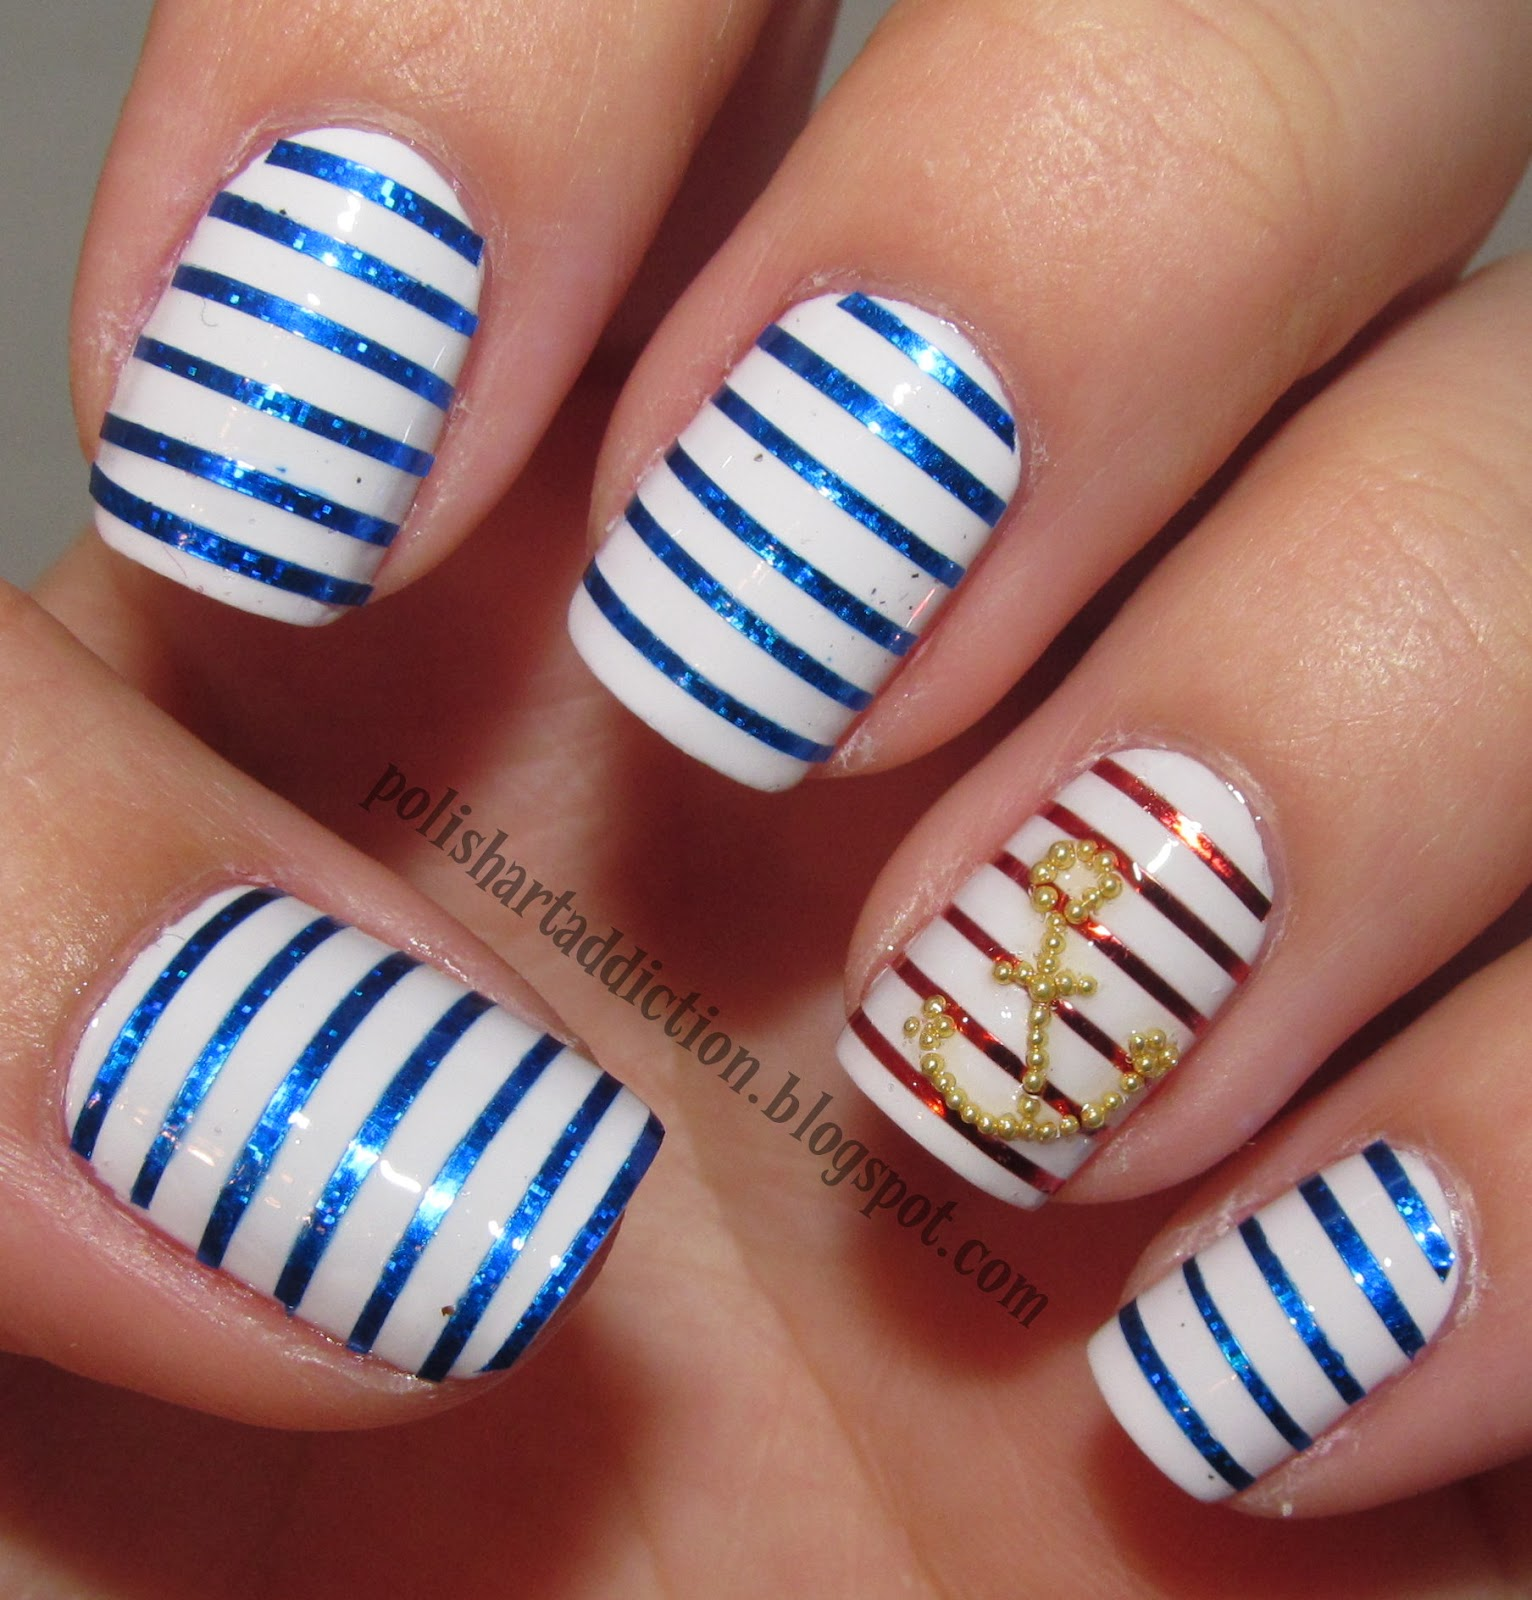 Nail Art Using Striping Tape: IT'S WHAT YOU LOVE ♡